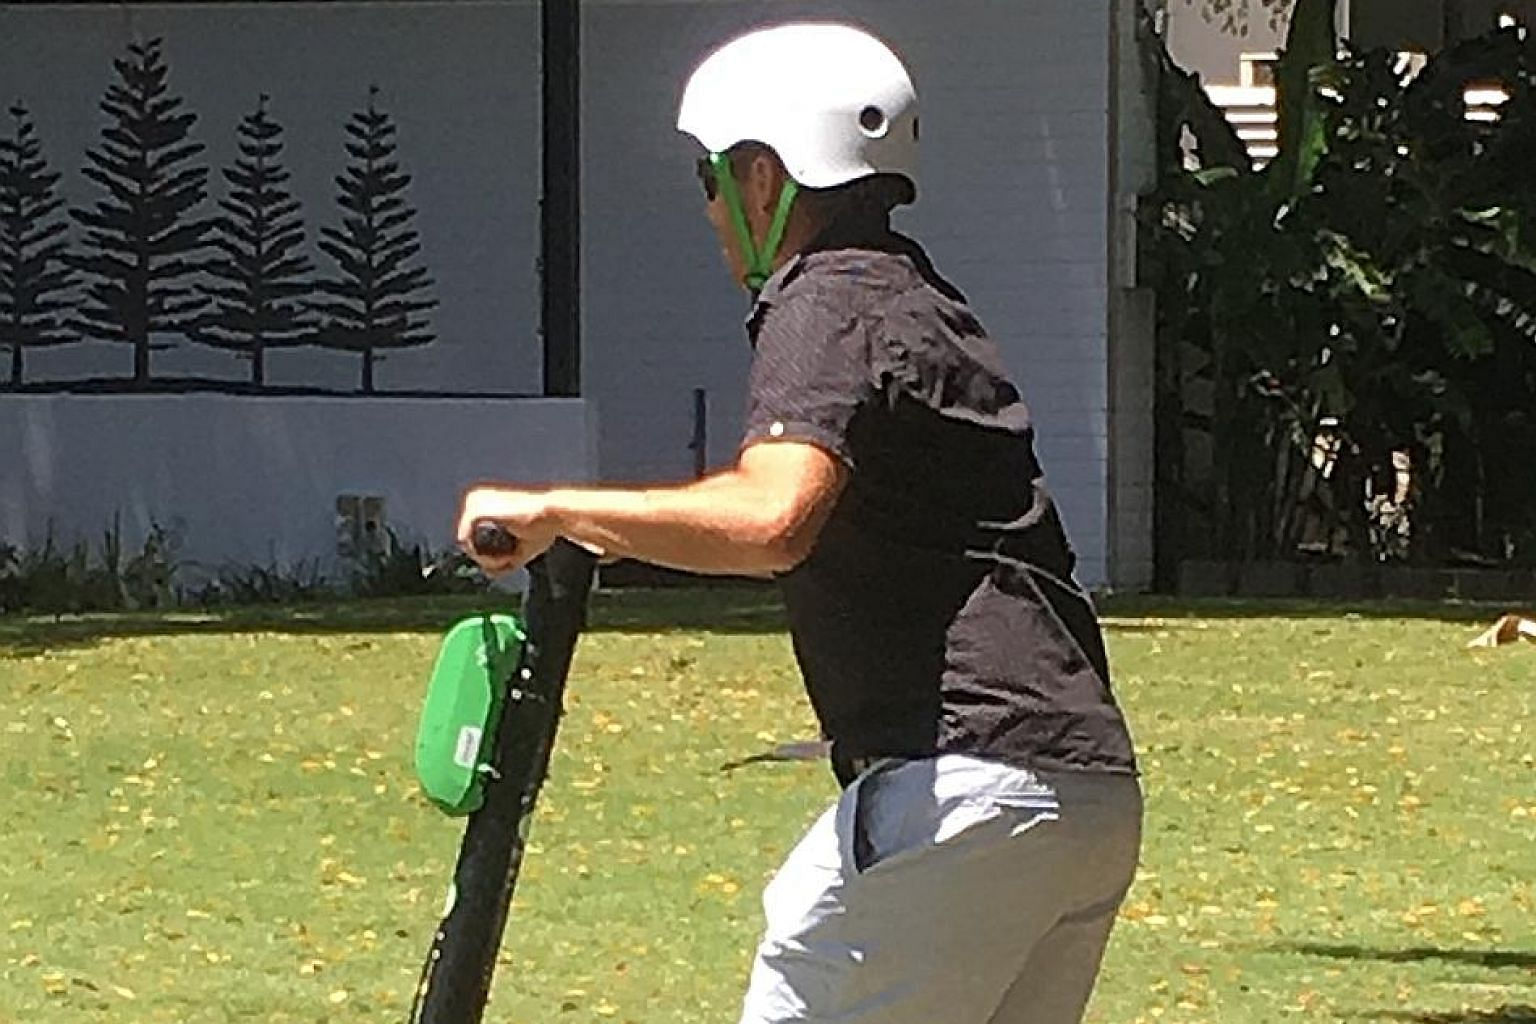 In and around the centre of Brisbane, the bright green e-scooters have become a common sight. But there have been multiple serious injuries, mostly caused by riders failing to observe speed limits.